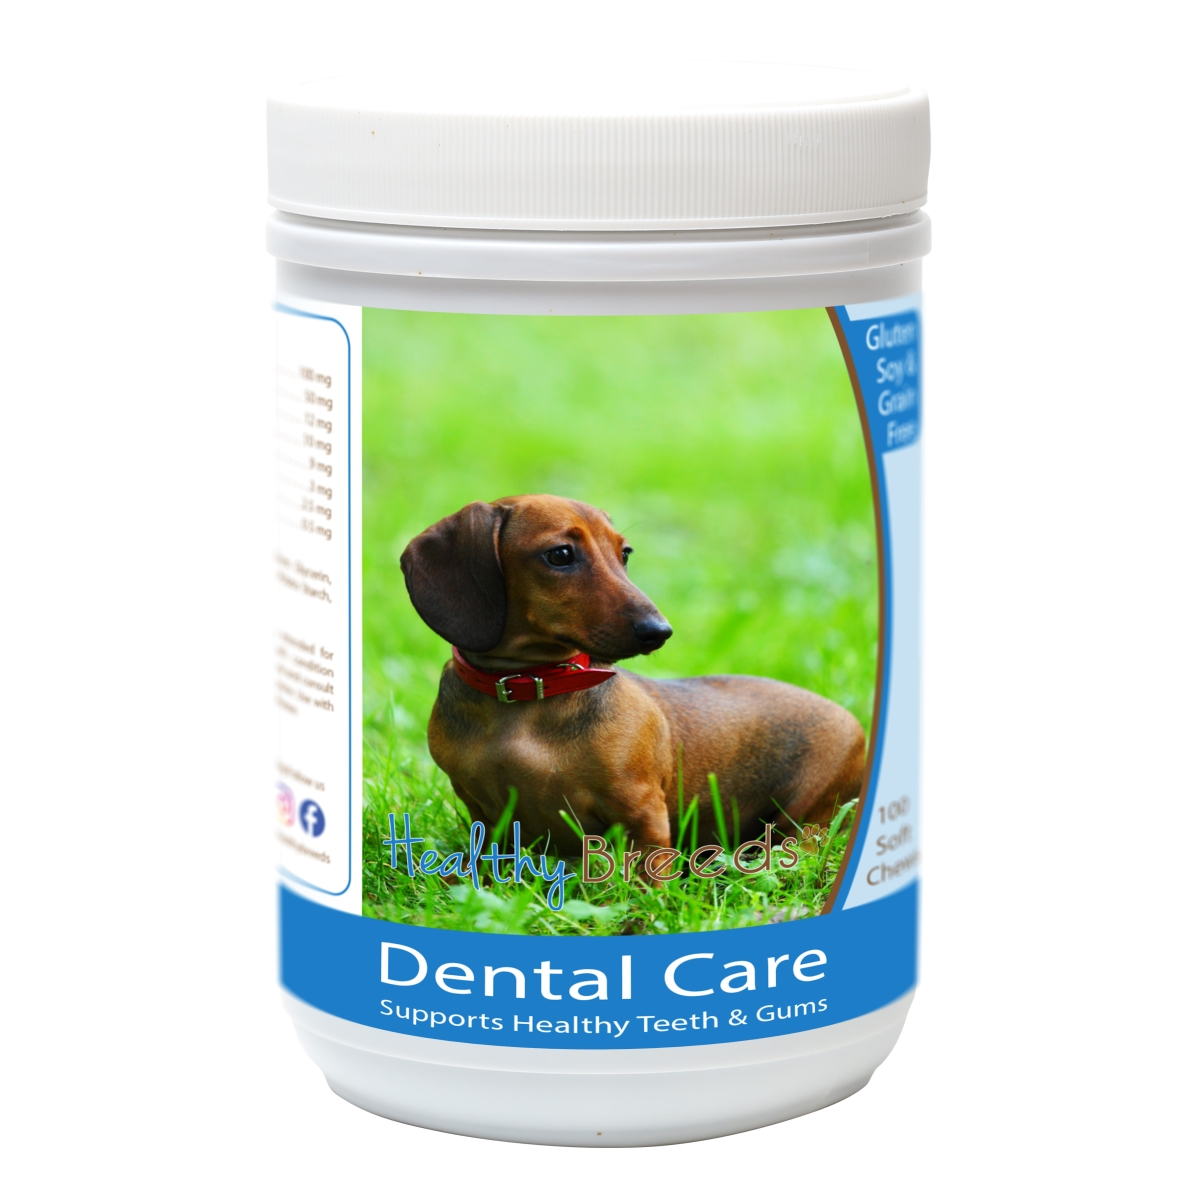 Healthy Breeds 840235162490 Dachshund Breath Care Soft Chews for Dogs - 60 Count